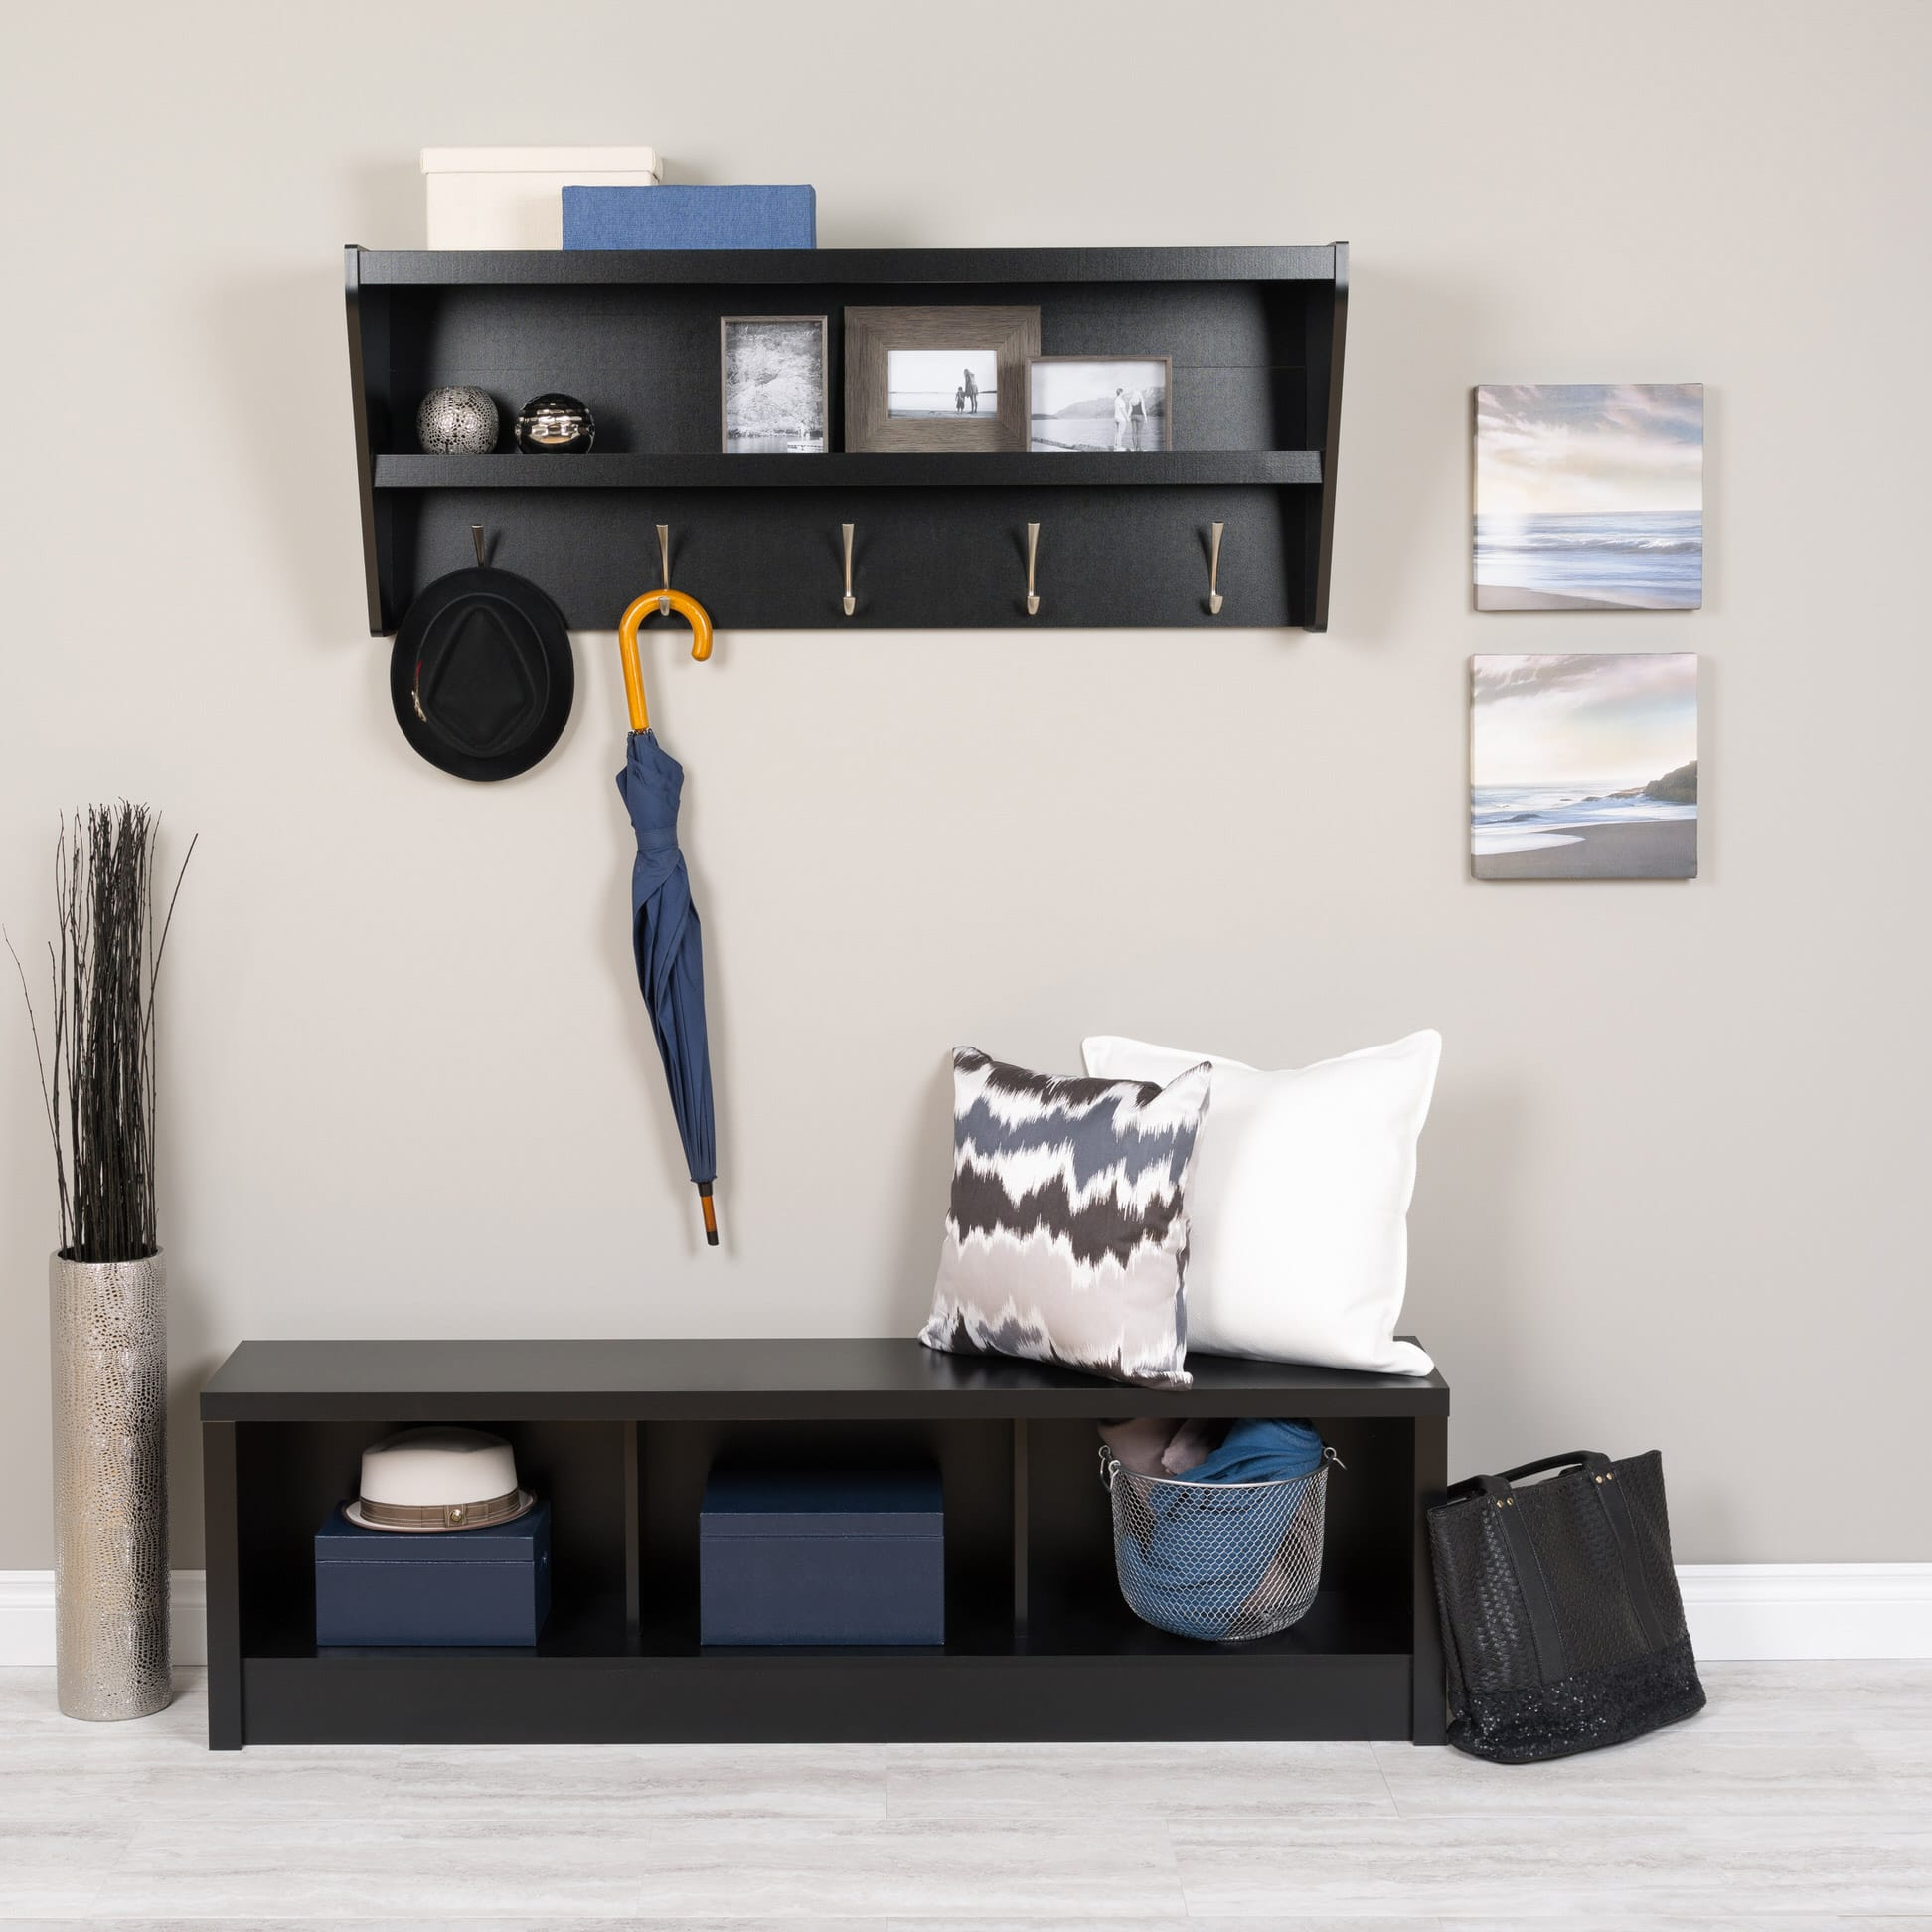 floating entryway shelf coat rack prepac bucw and wall height above counter tures ikea wal wooden hooks brackets for island countertop wood storage bookcase shoe velcro removable